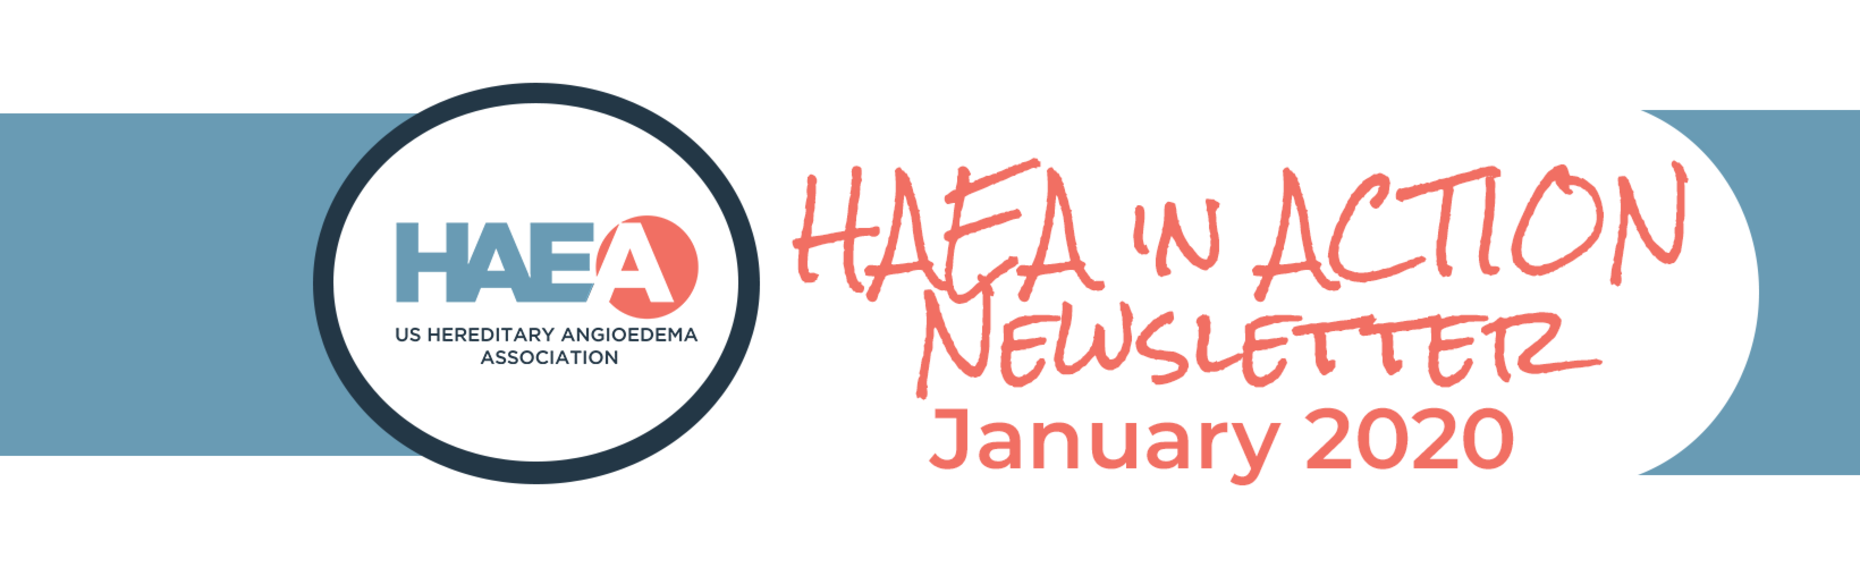 HAEA in Action January 2020 Newsletter